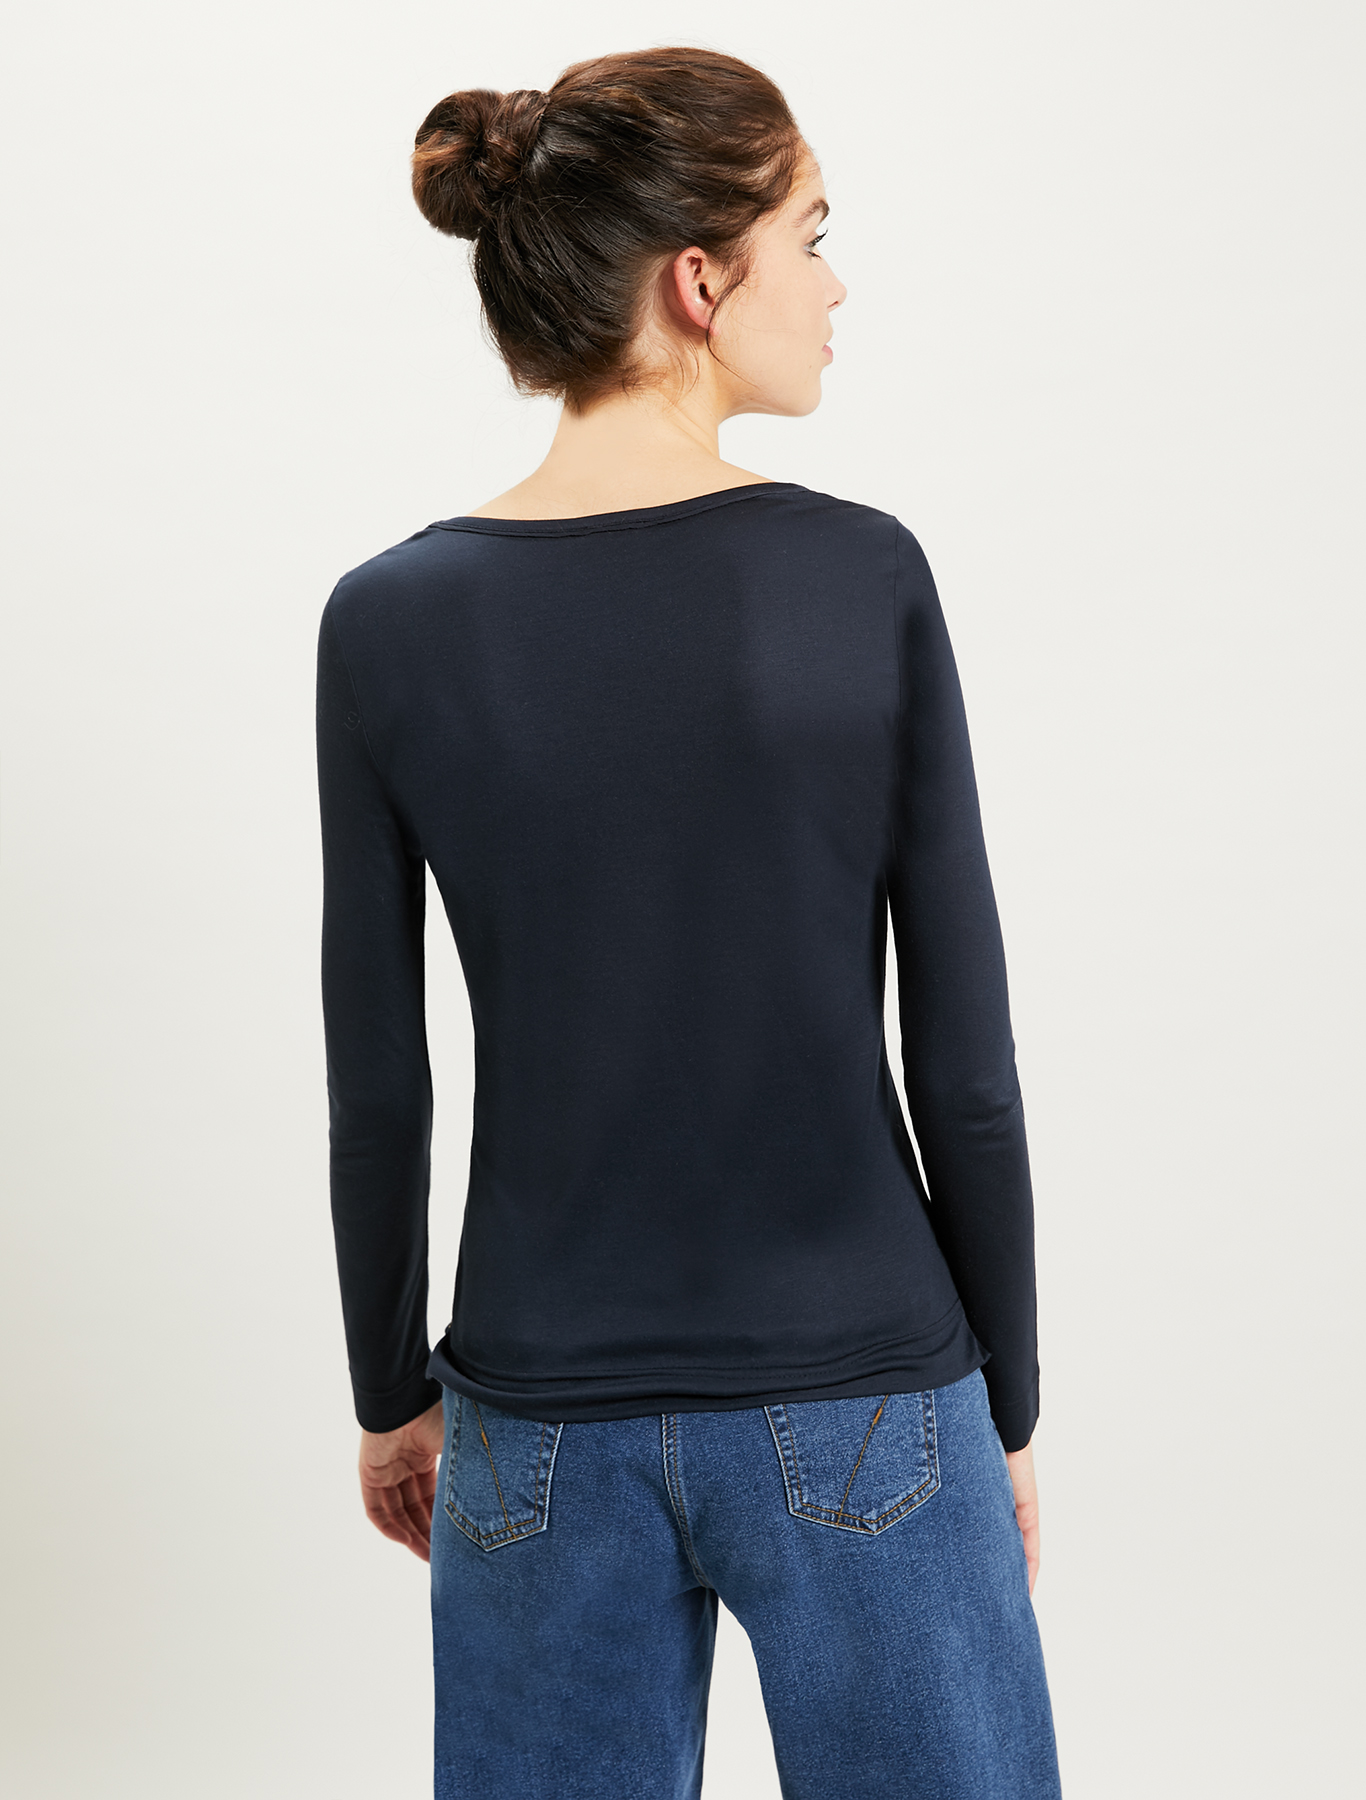 T-shirt with crêpe trim - navy blue - pennyblack